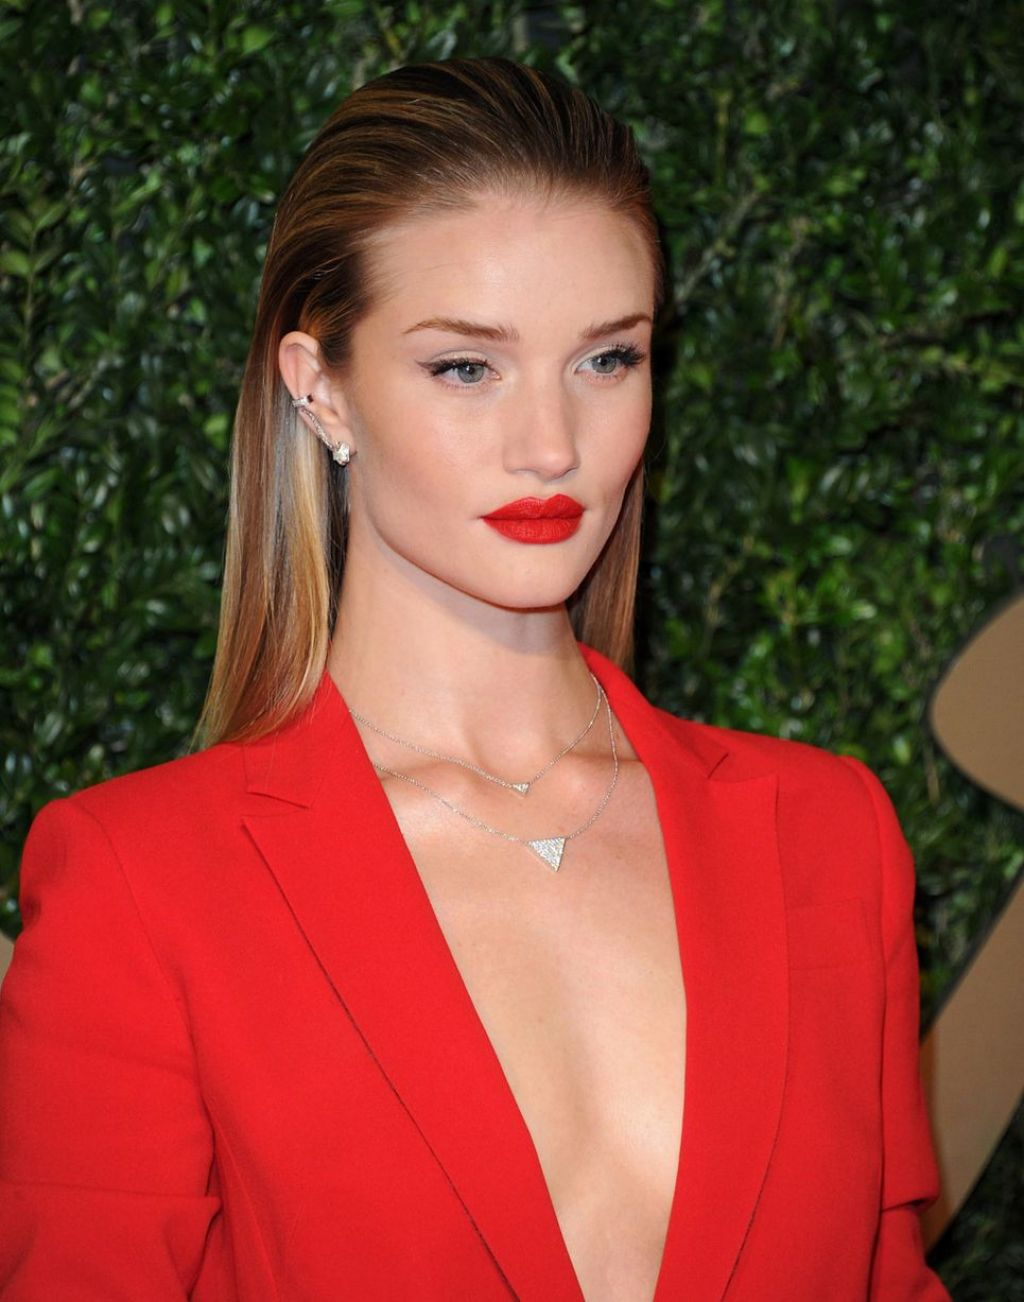 Rosie Huntington-Whiteley at British Fashion Awards in London - December 2013